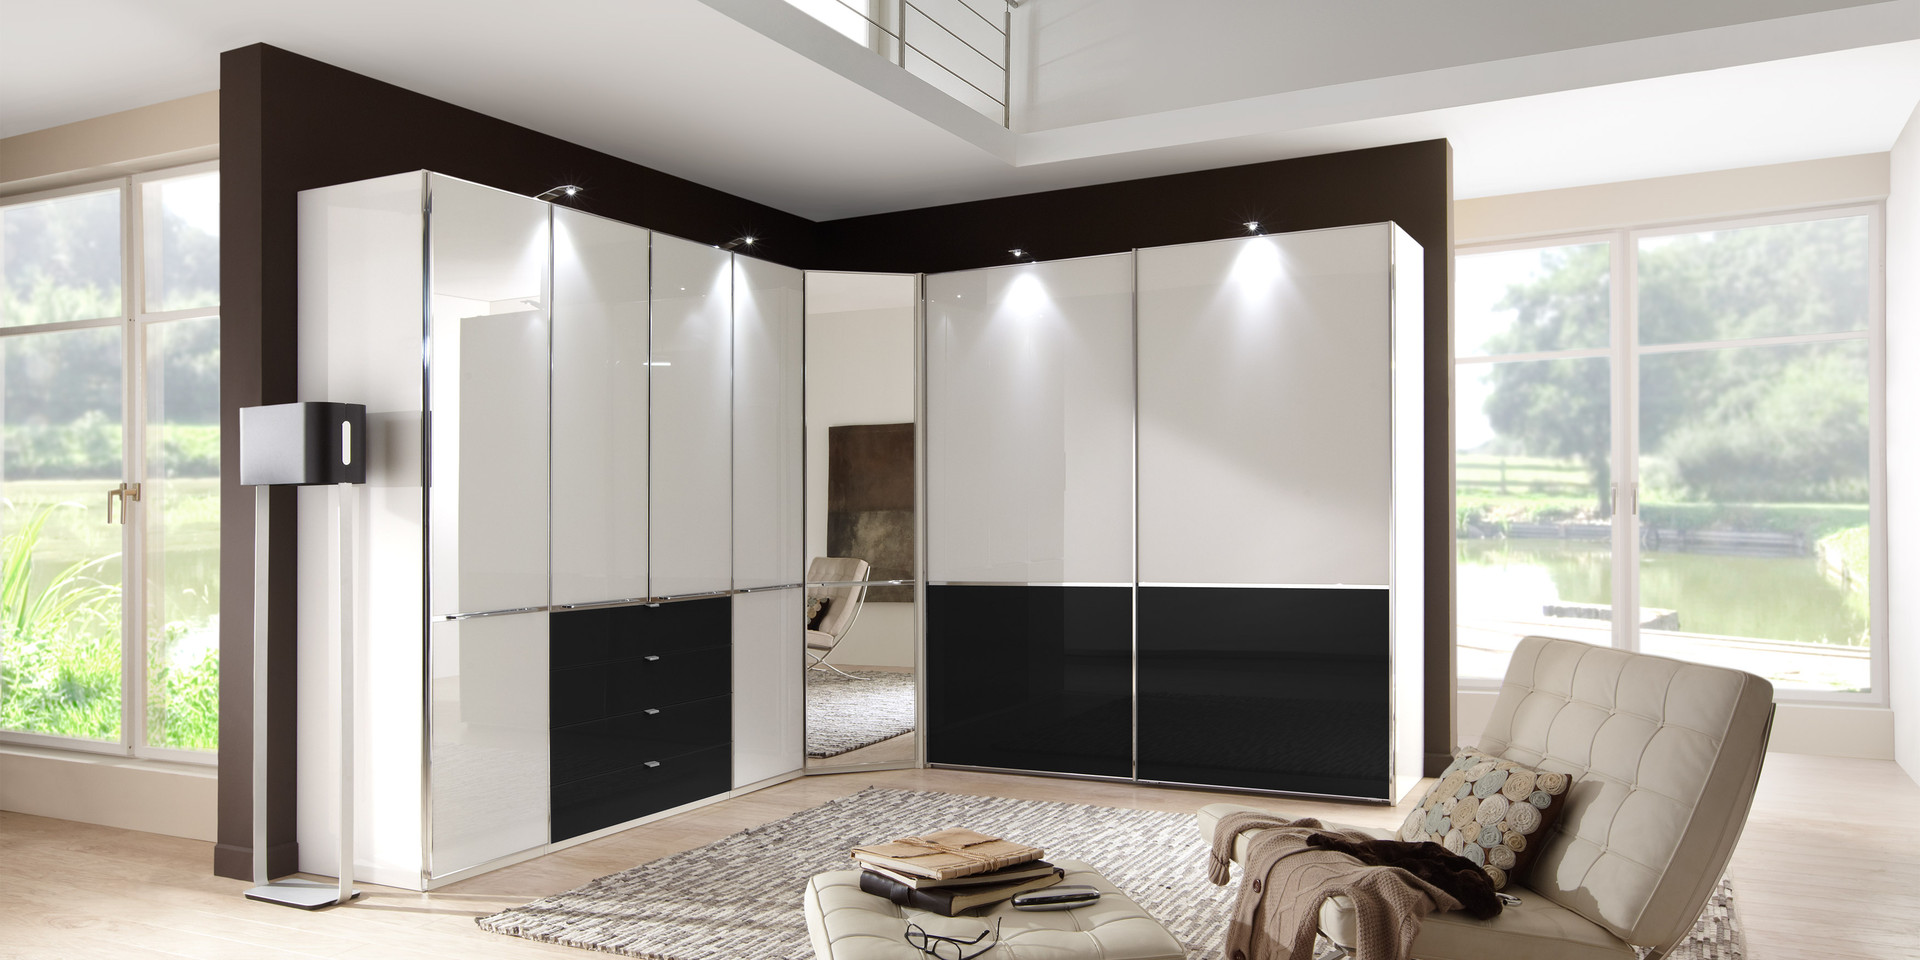 entdecken sie hier das programm shanghai m belhersteller wiemann. Black Bedroom Furniture Sets. Home Design Ideas